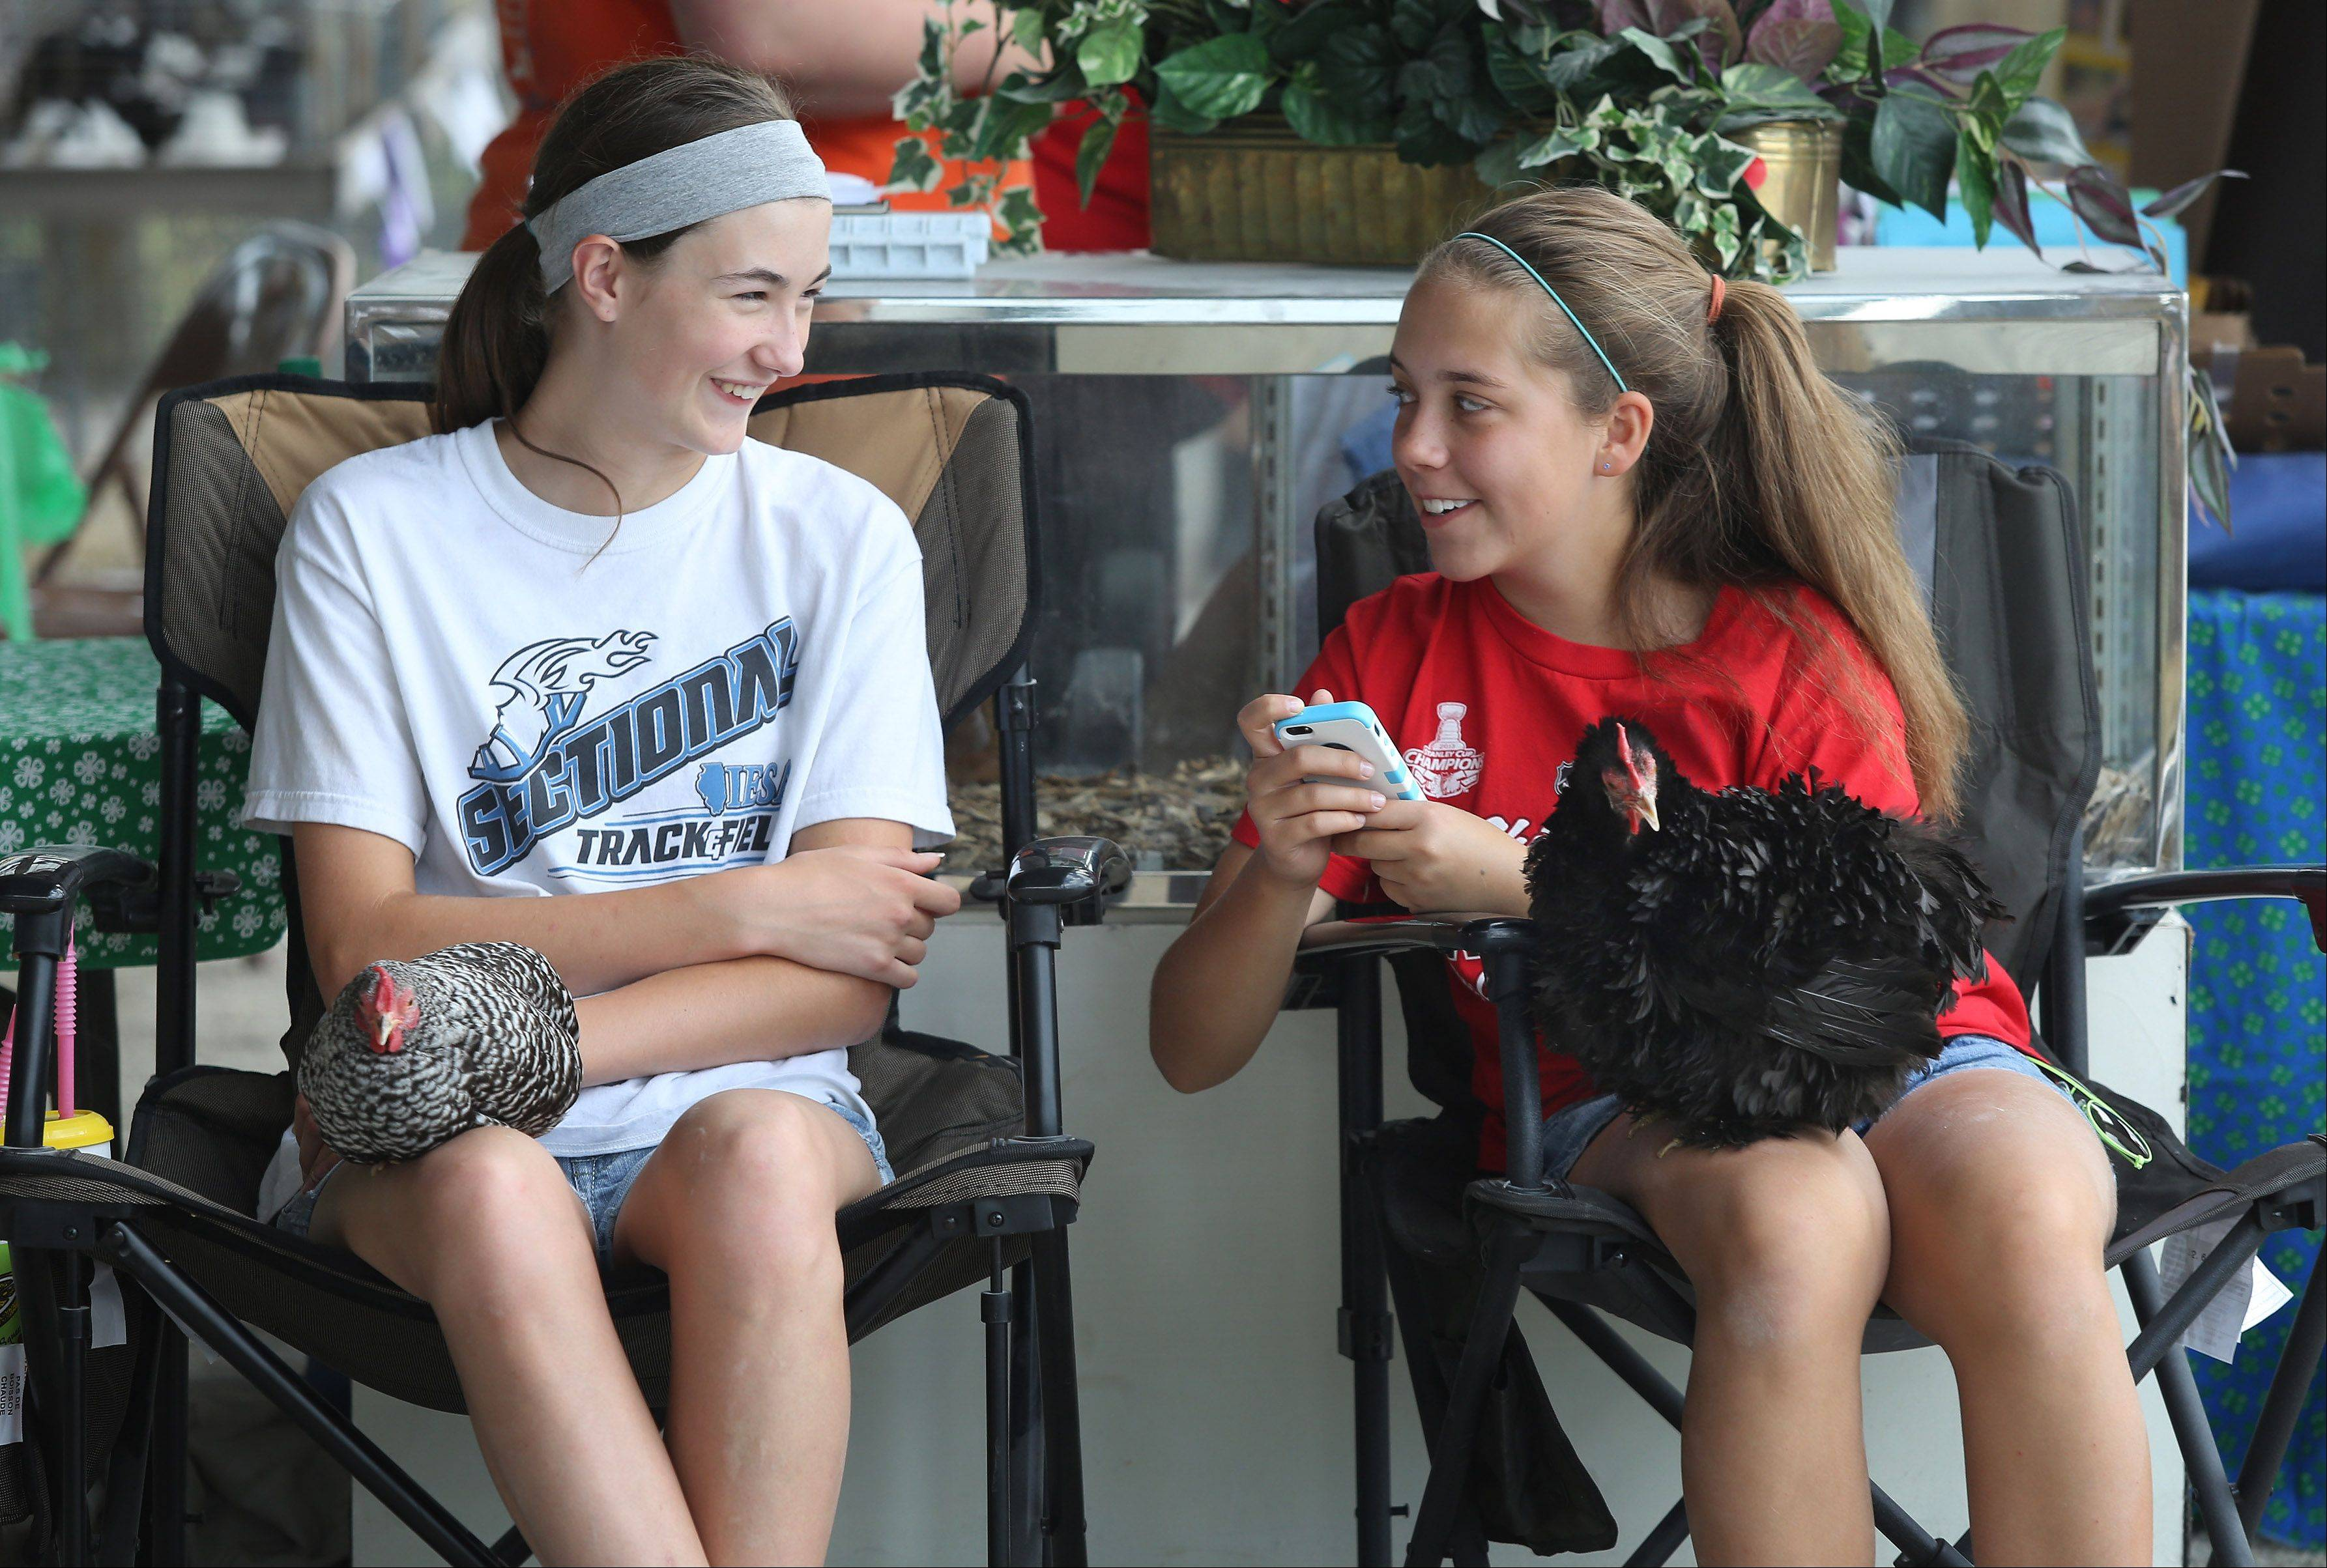 Friends Dana Knoblauch, 15, of Lindenhurst , left, and Jenna Anderson, 15, of Lake Villa sit with chickens on their laps during the Lake County Fair Thursday at the Lake County Fairgrounds in Grayslake.